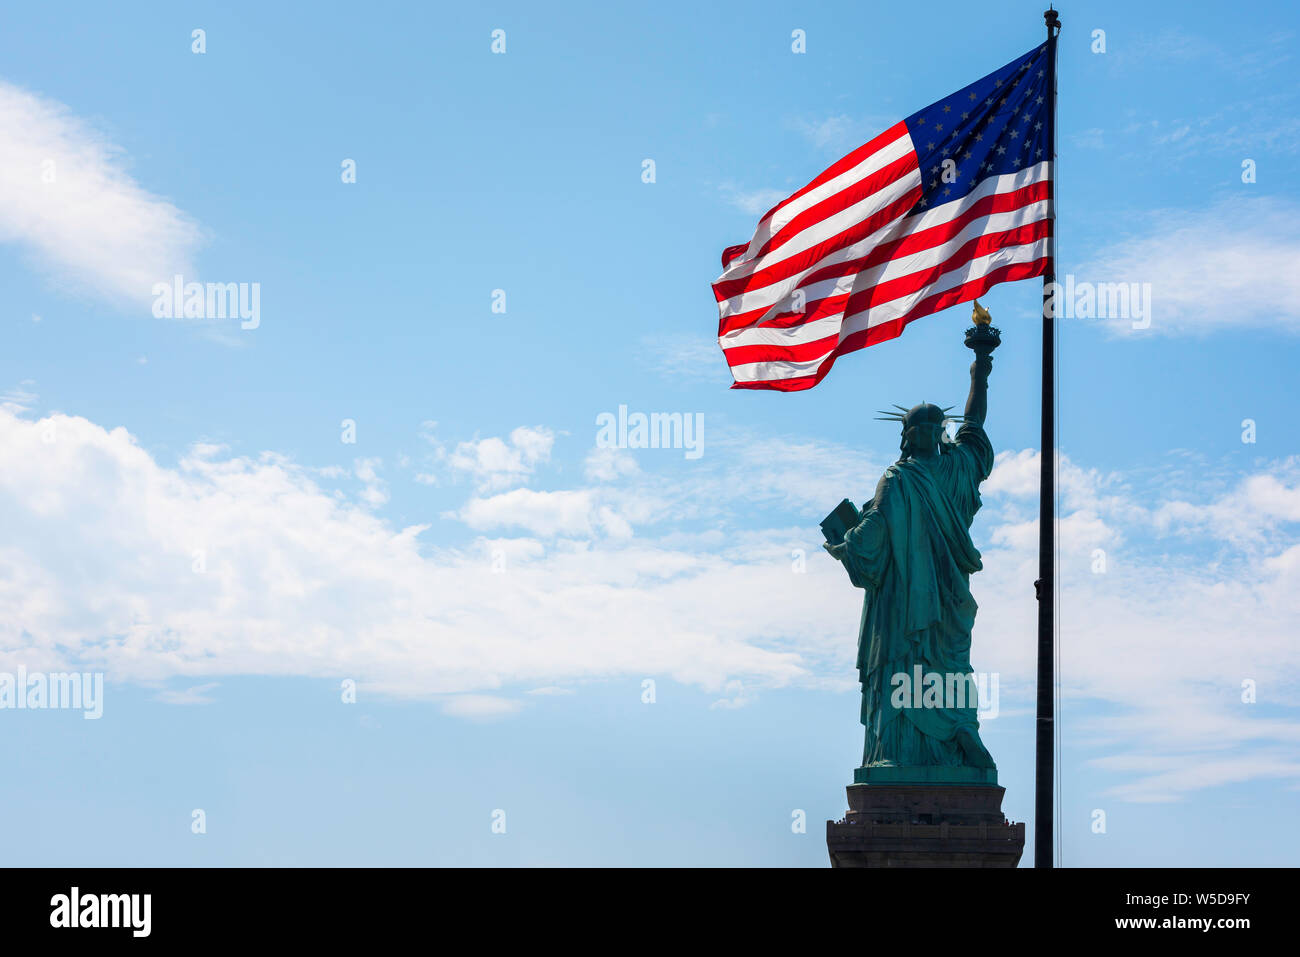 Freedom, view of the rear of the Statue of Liberty and a back-lit stars and stripes flag with copy space sited left, New York City, USA. Stock Photo